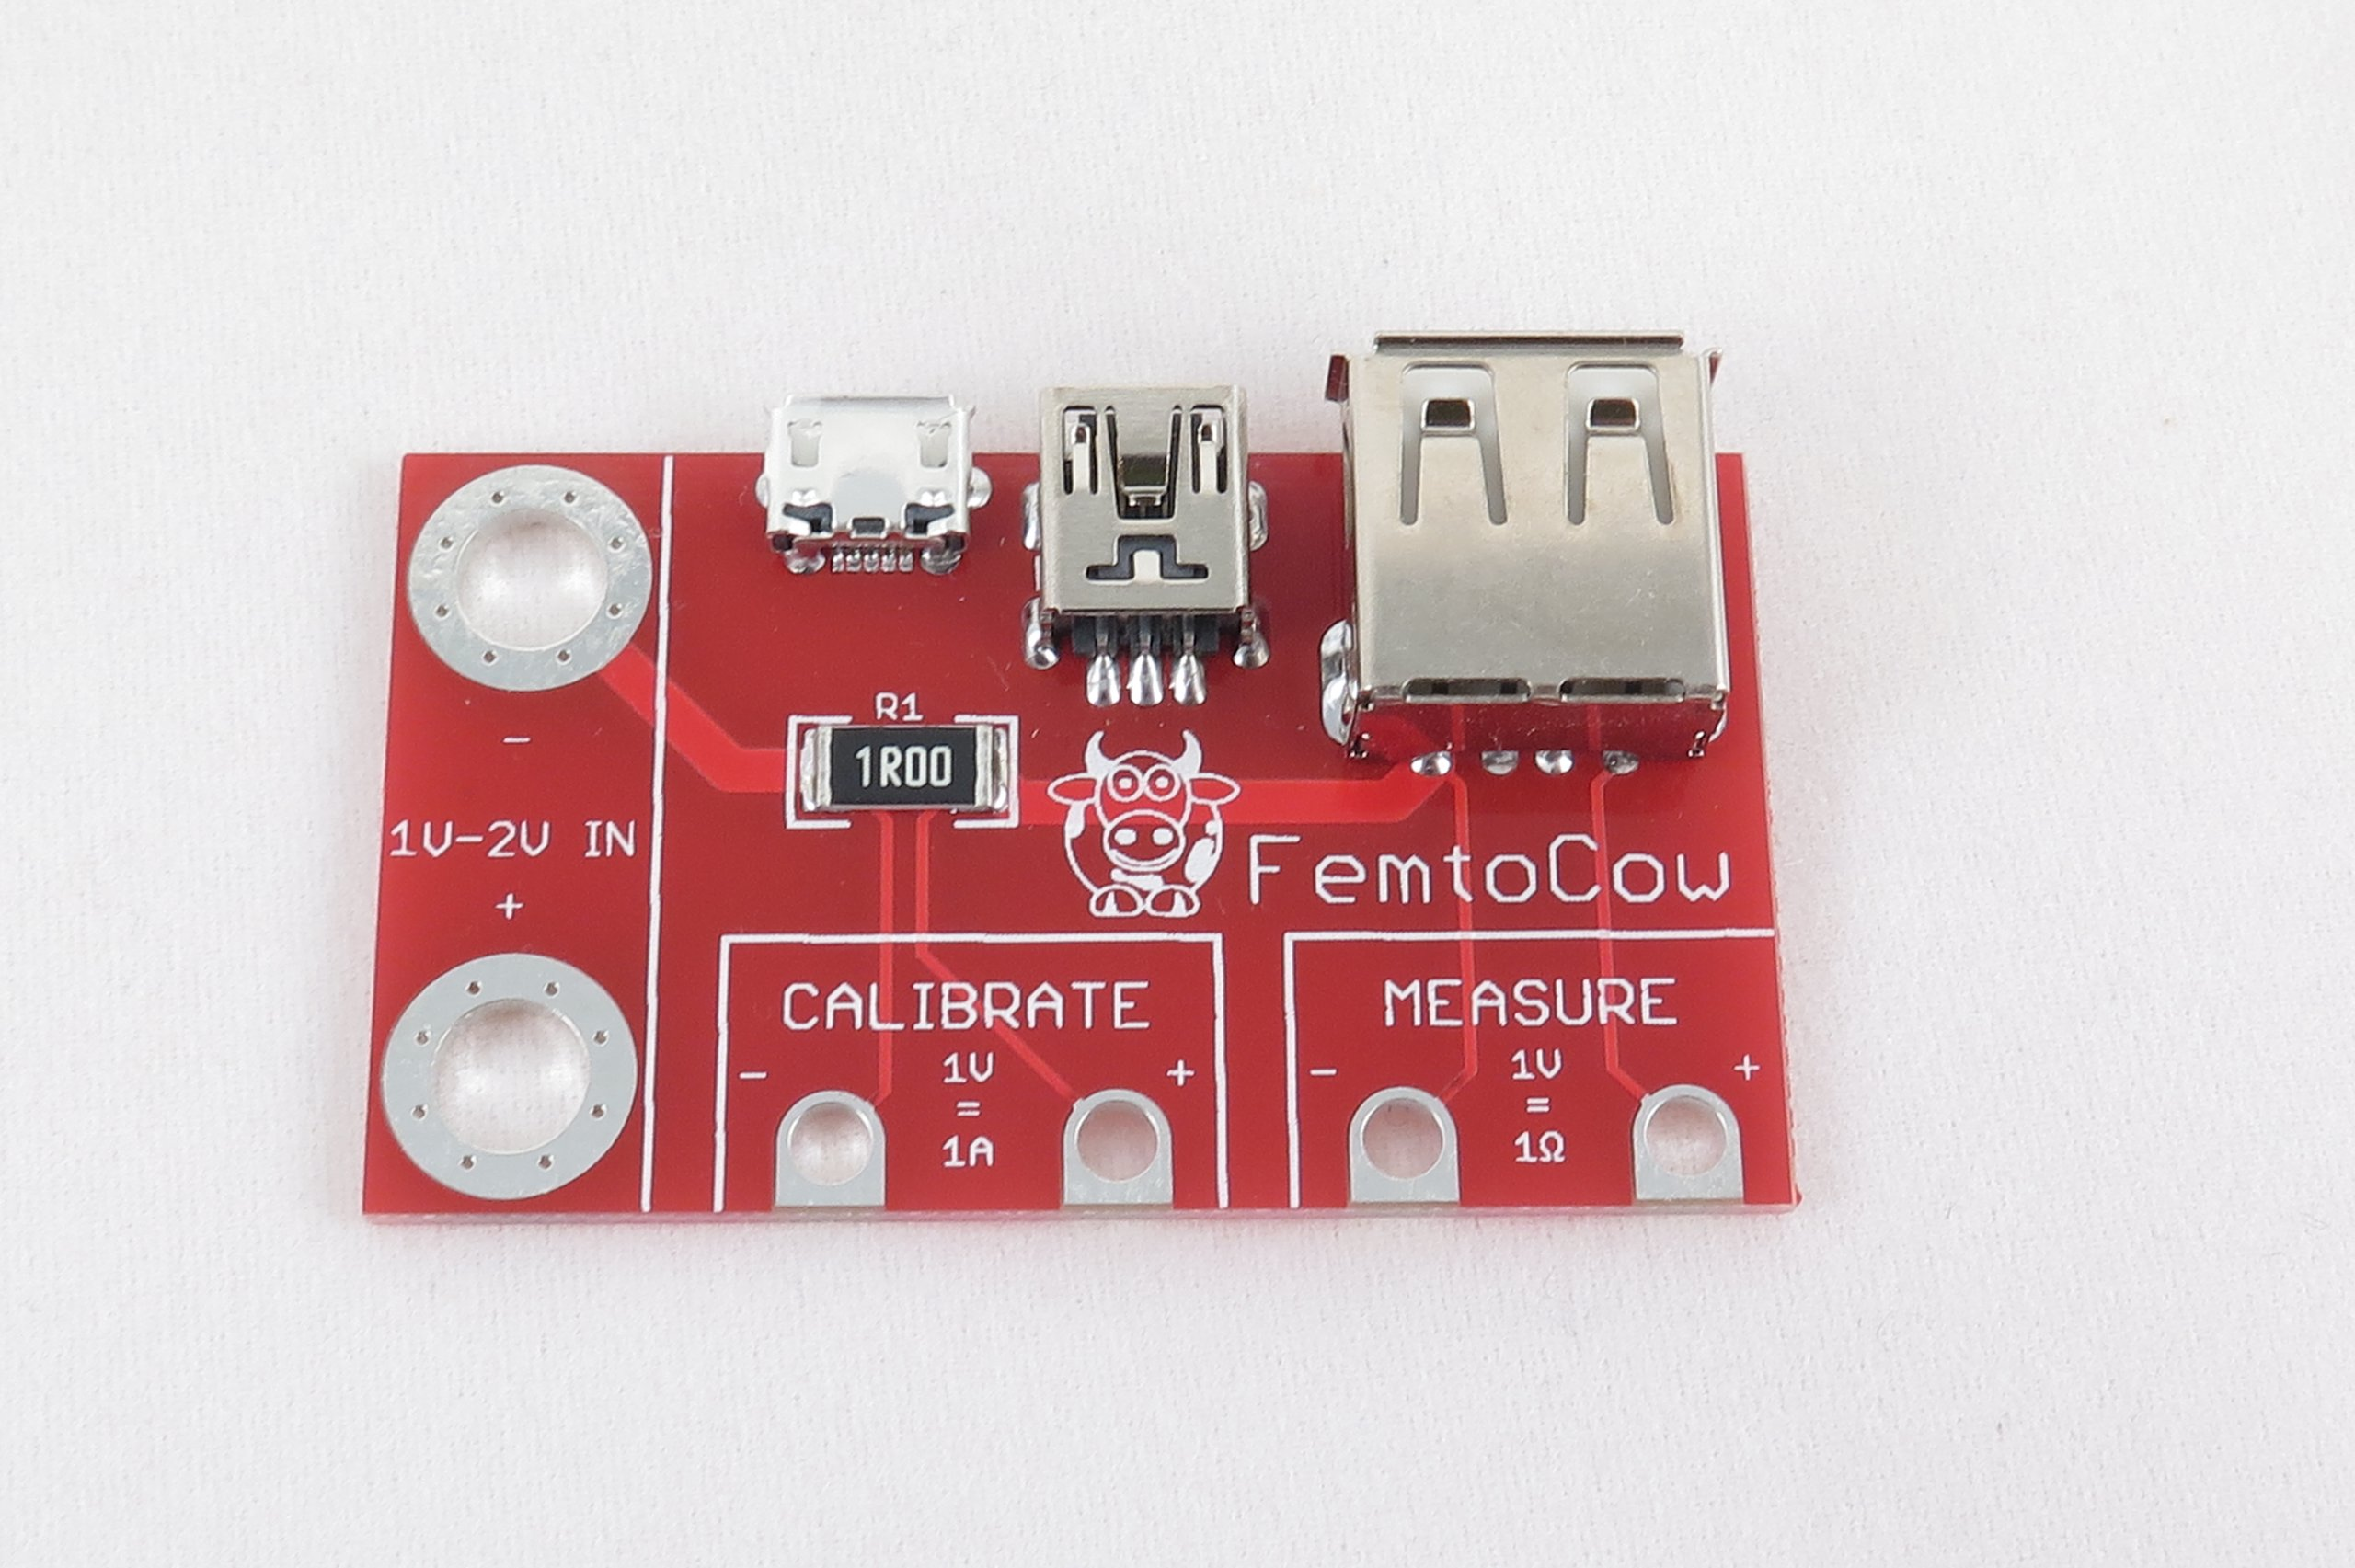 Cable Resistance Tester : Usb cable resistance tester from femtocow on tindie